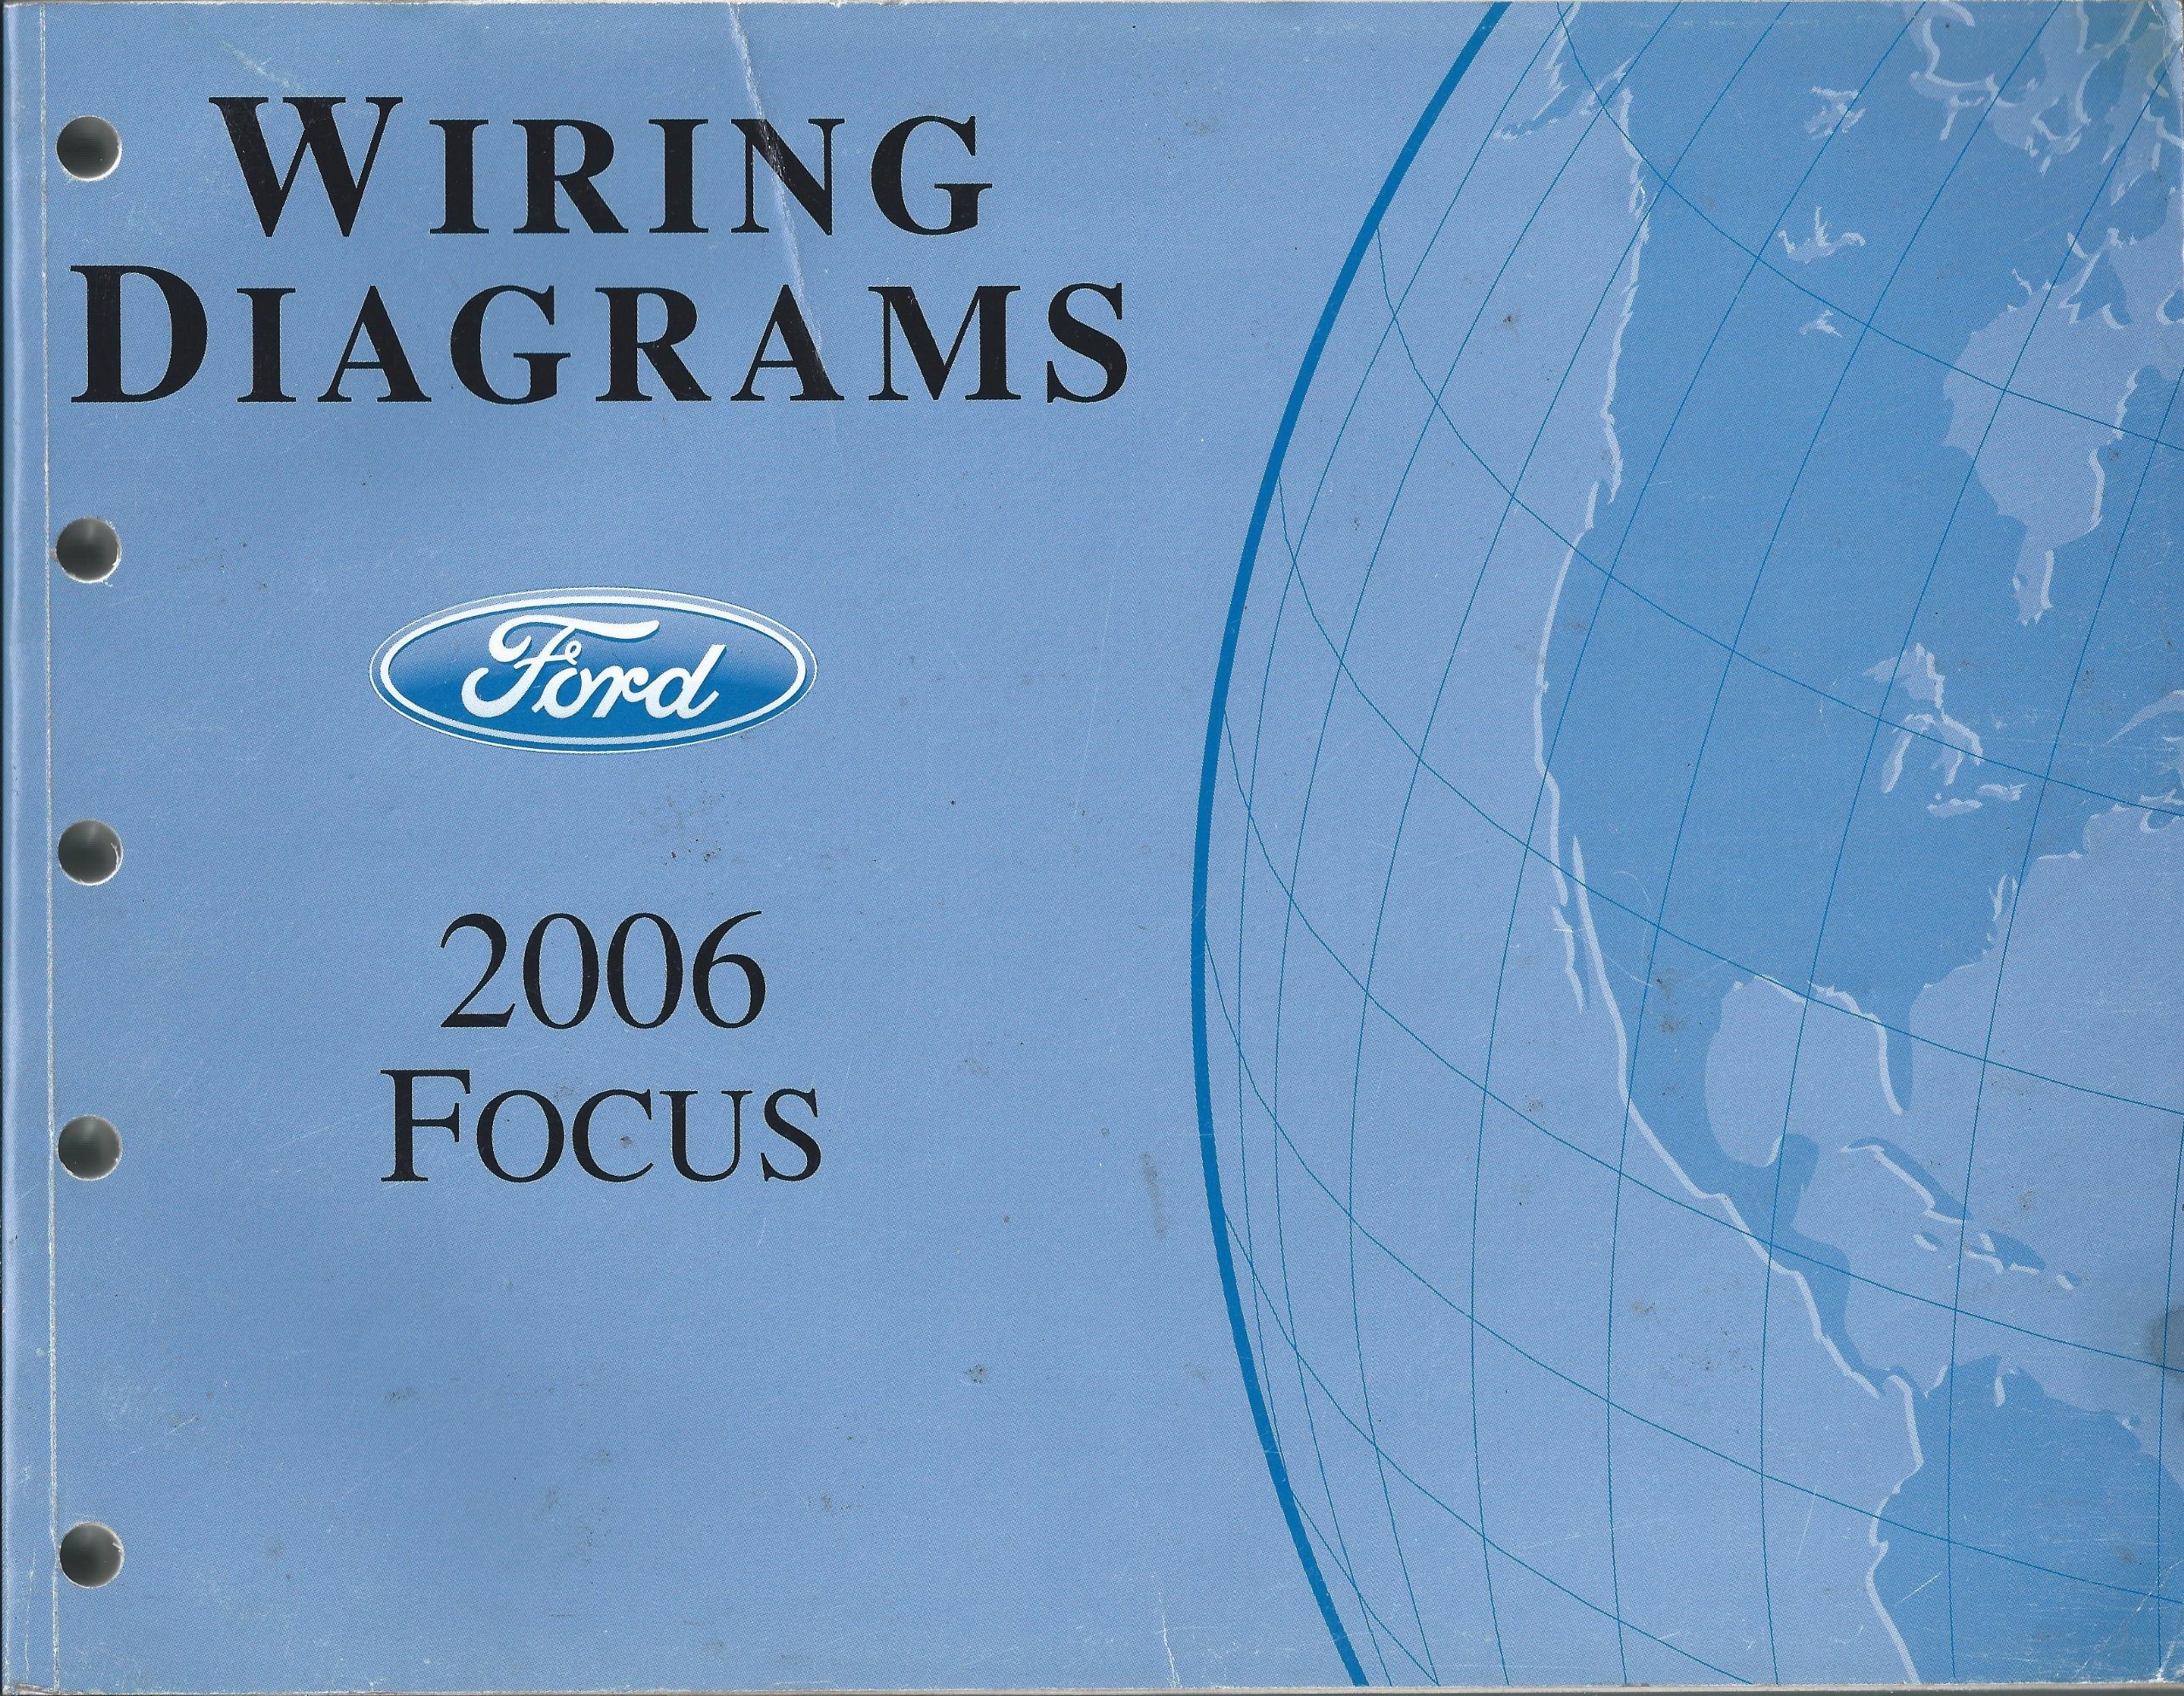 2006 Ford Focu Wiring Diagram